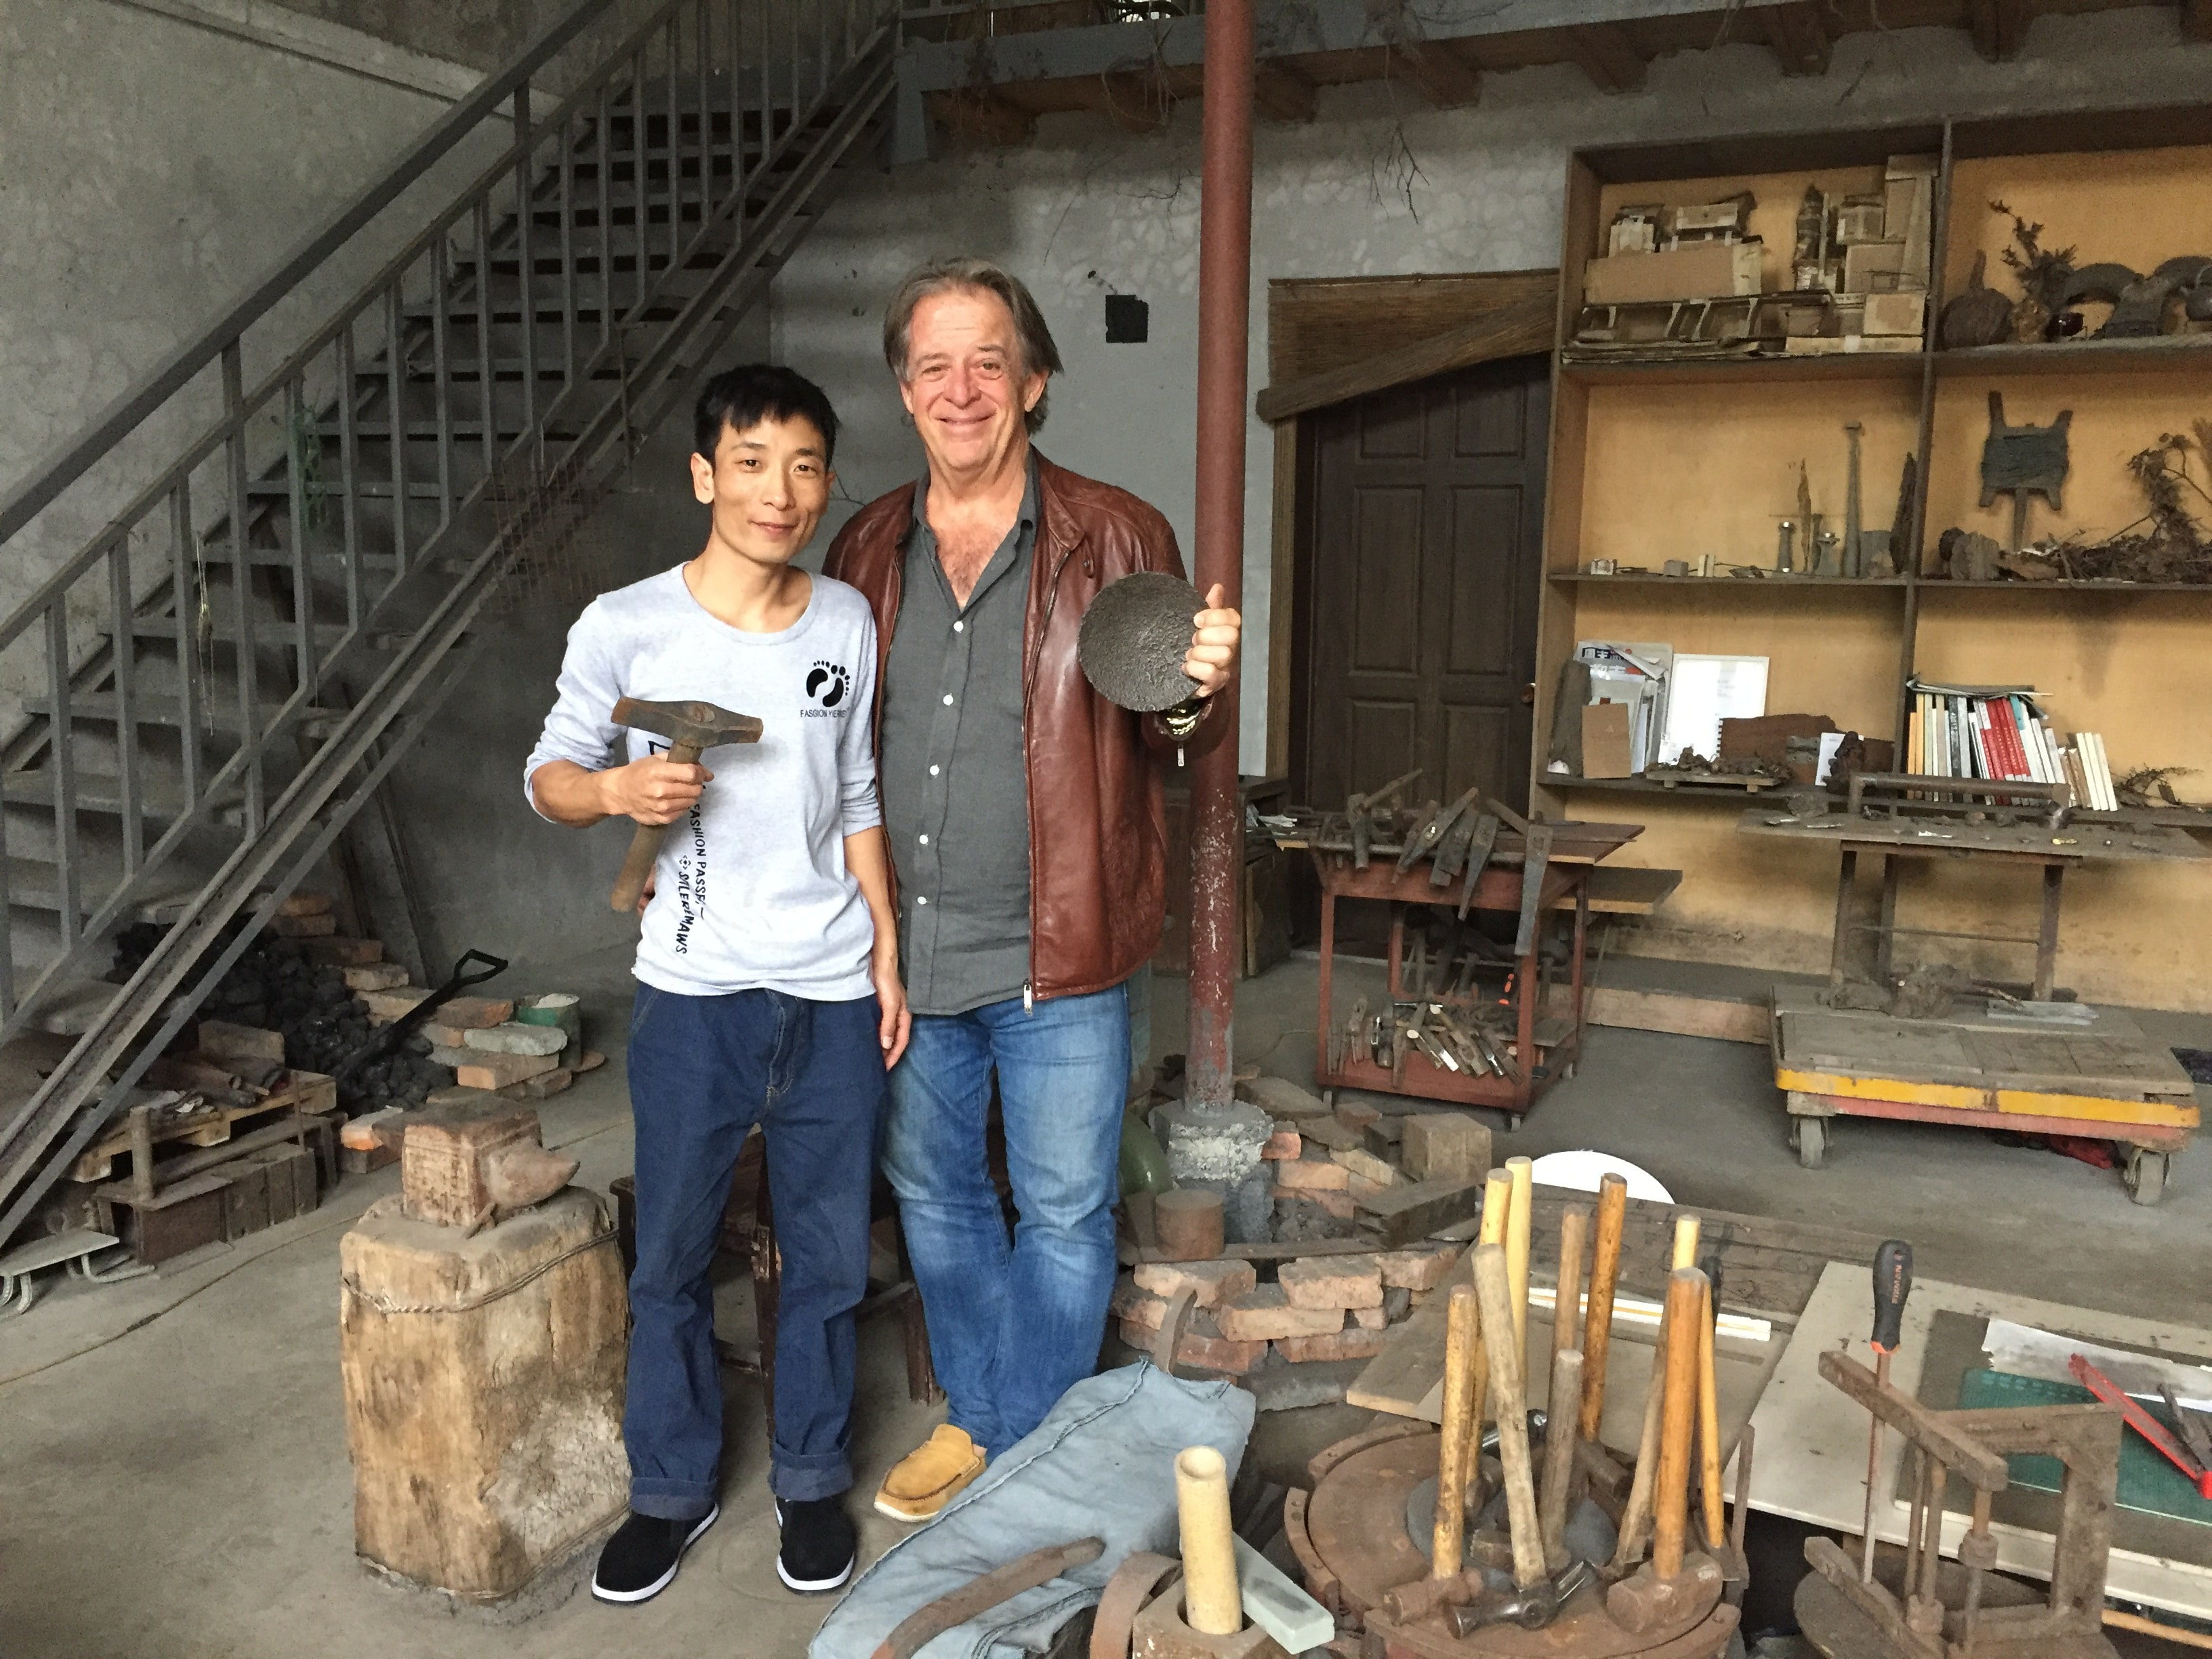 With the metal craftsman